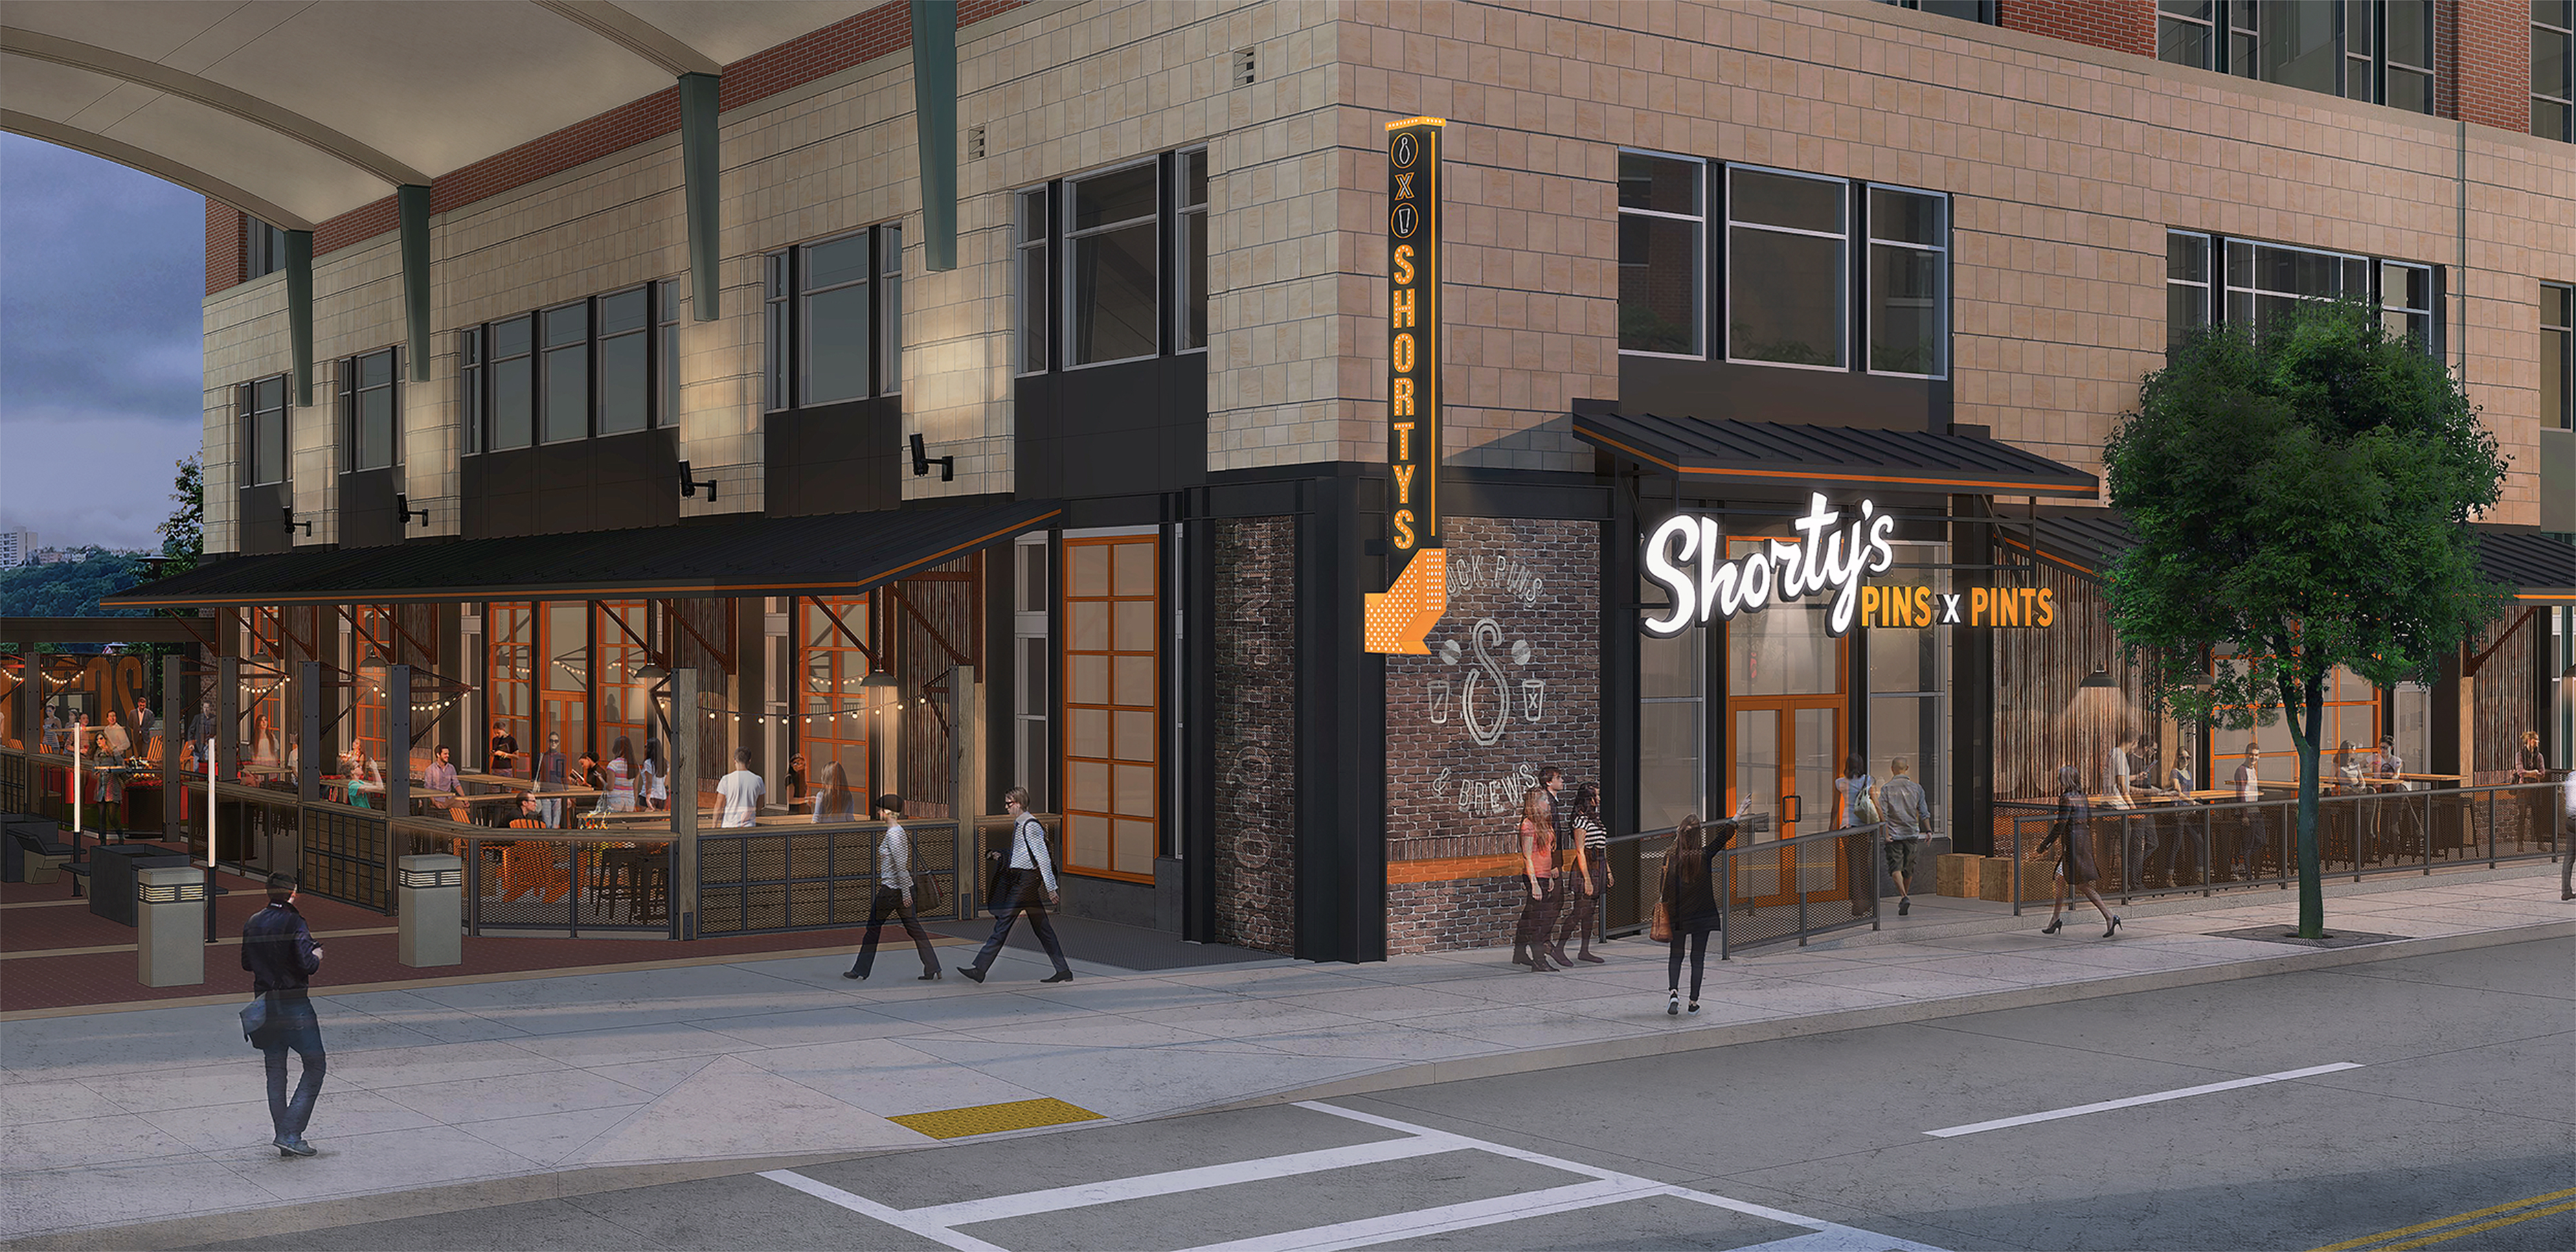 Low_Shortys Exterior Rendering_10_22_201